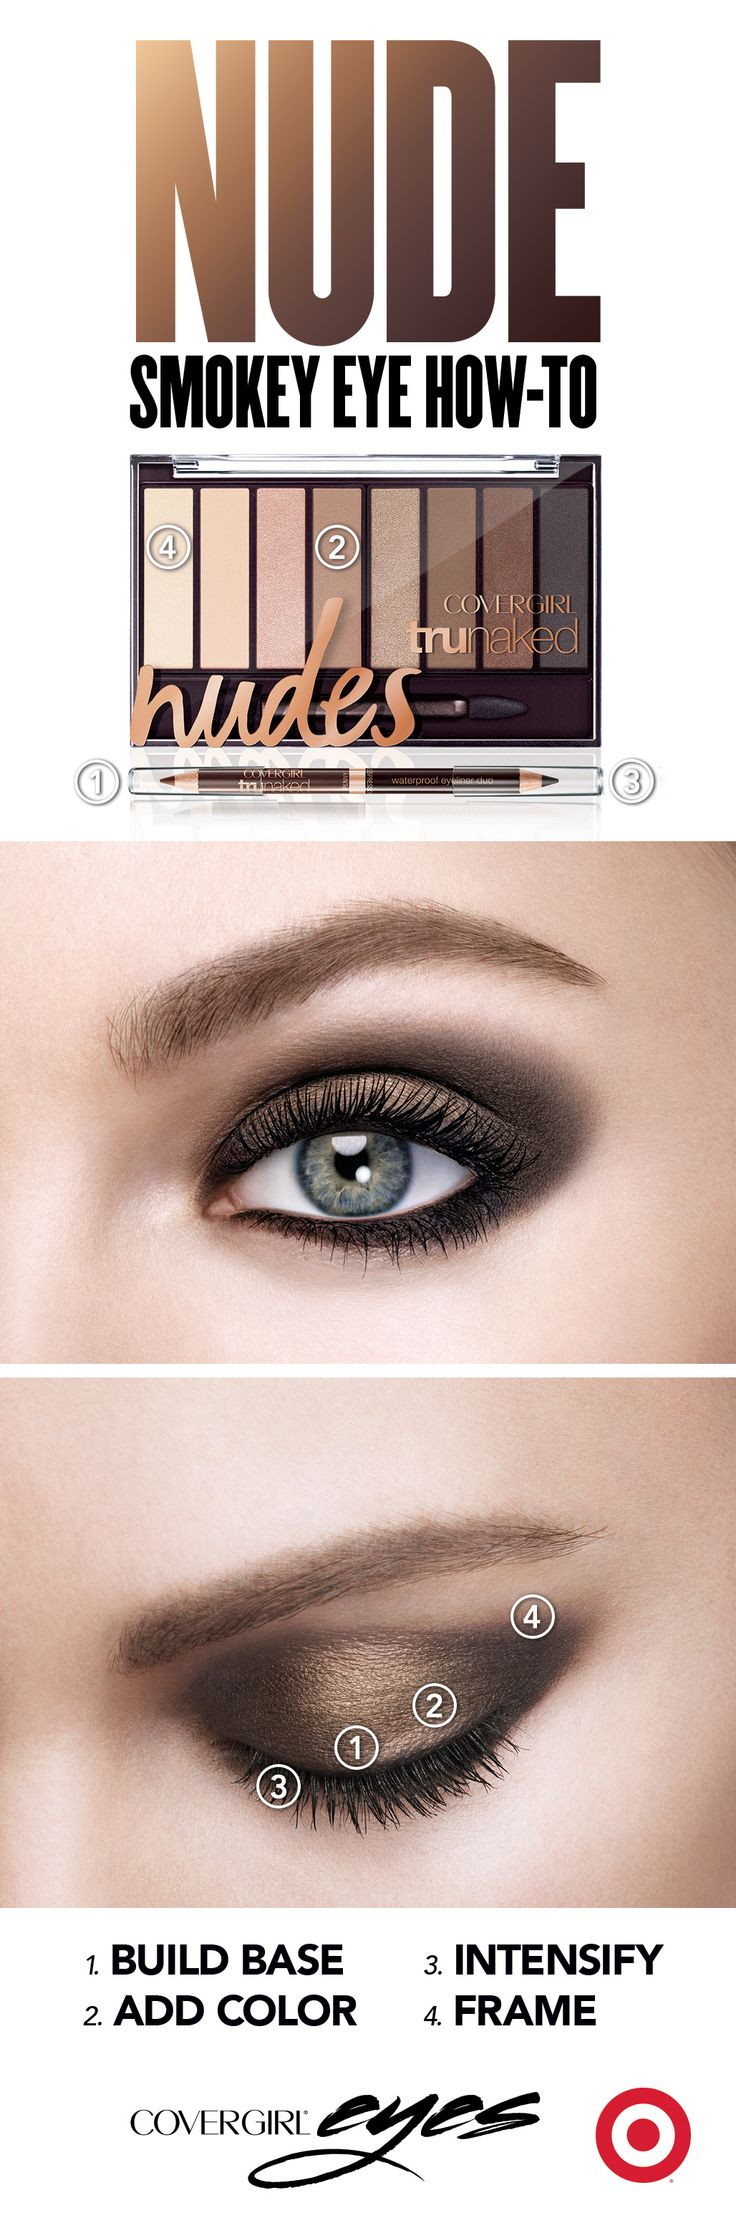 The nude smokey eye is as easy as 1, 2, 3, 4! STEP 1: Apply truNaked eyeliner in Penny on the eyelid and bottom lash line, then blend. STEP 2: Sweep eyelid with a pop of color using color 4 from the truNaked Nudes Eyeshadow Palette. STEP 3: Apply truNaked eyeliner in Espresso to the waterline, then blend. STEP 4: Highlight brow bone with color 1 from the truNaked Nudes Eyeshadow Palette, then finish with black Plumpify mascara by lashblast™.